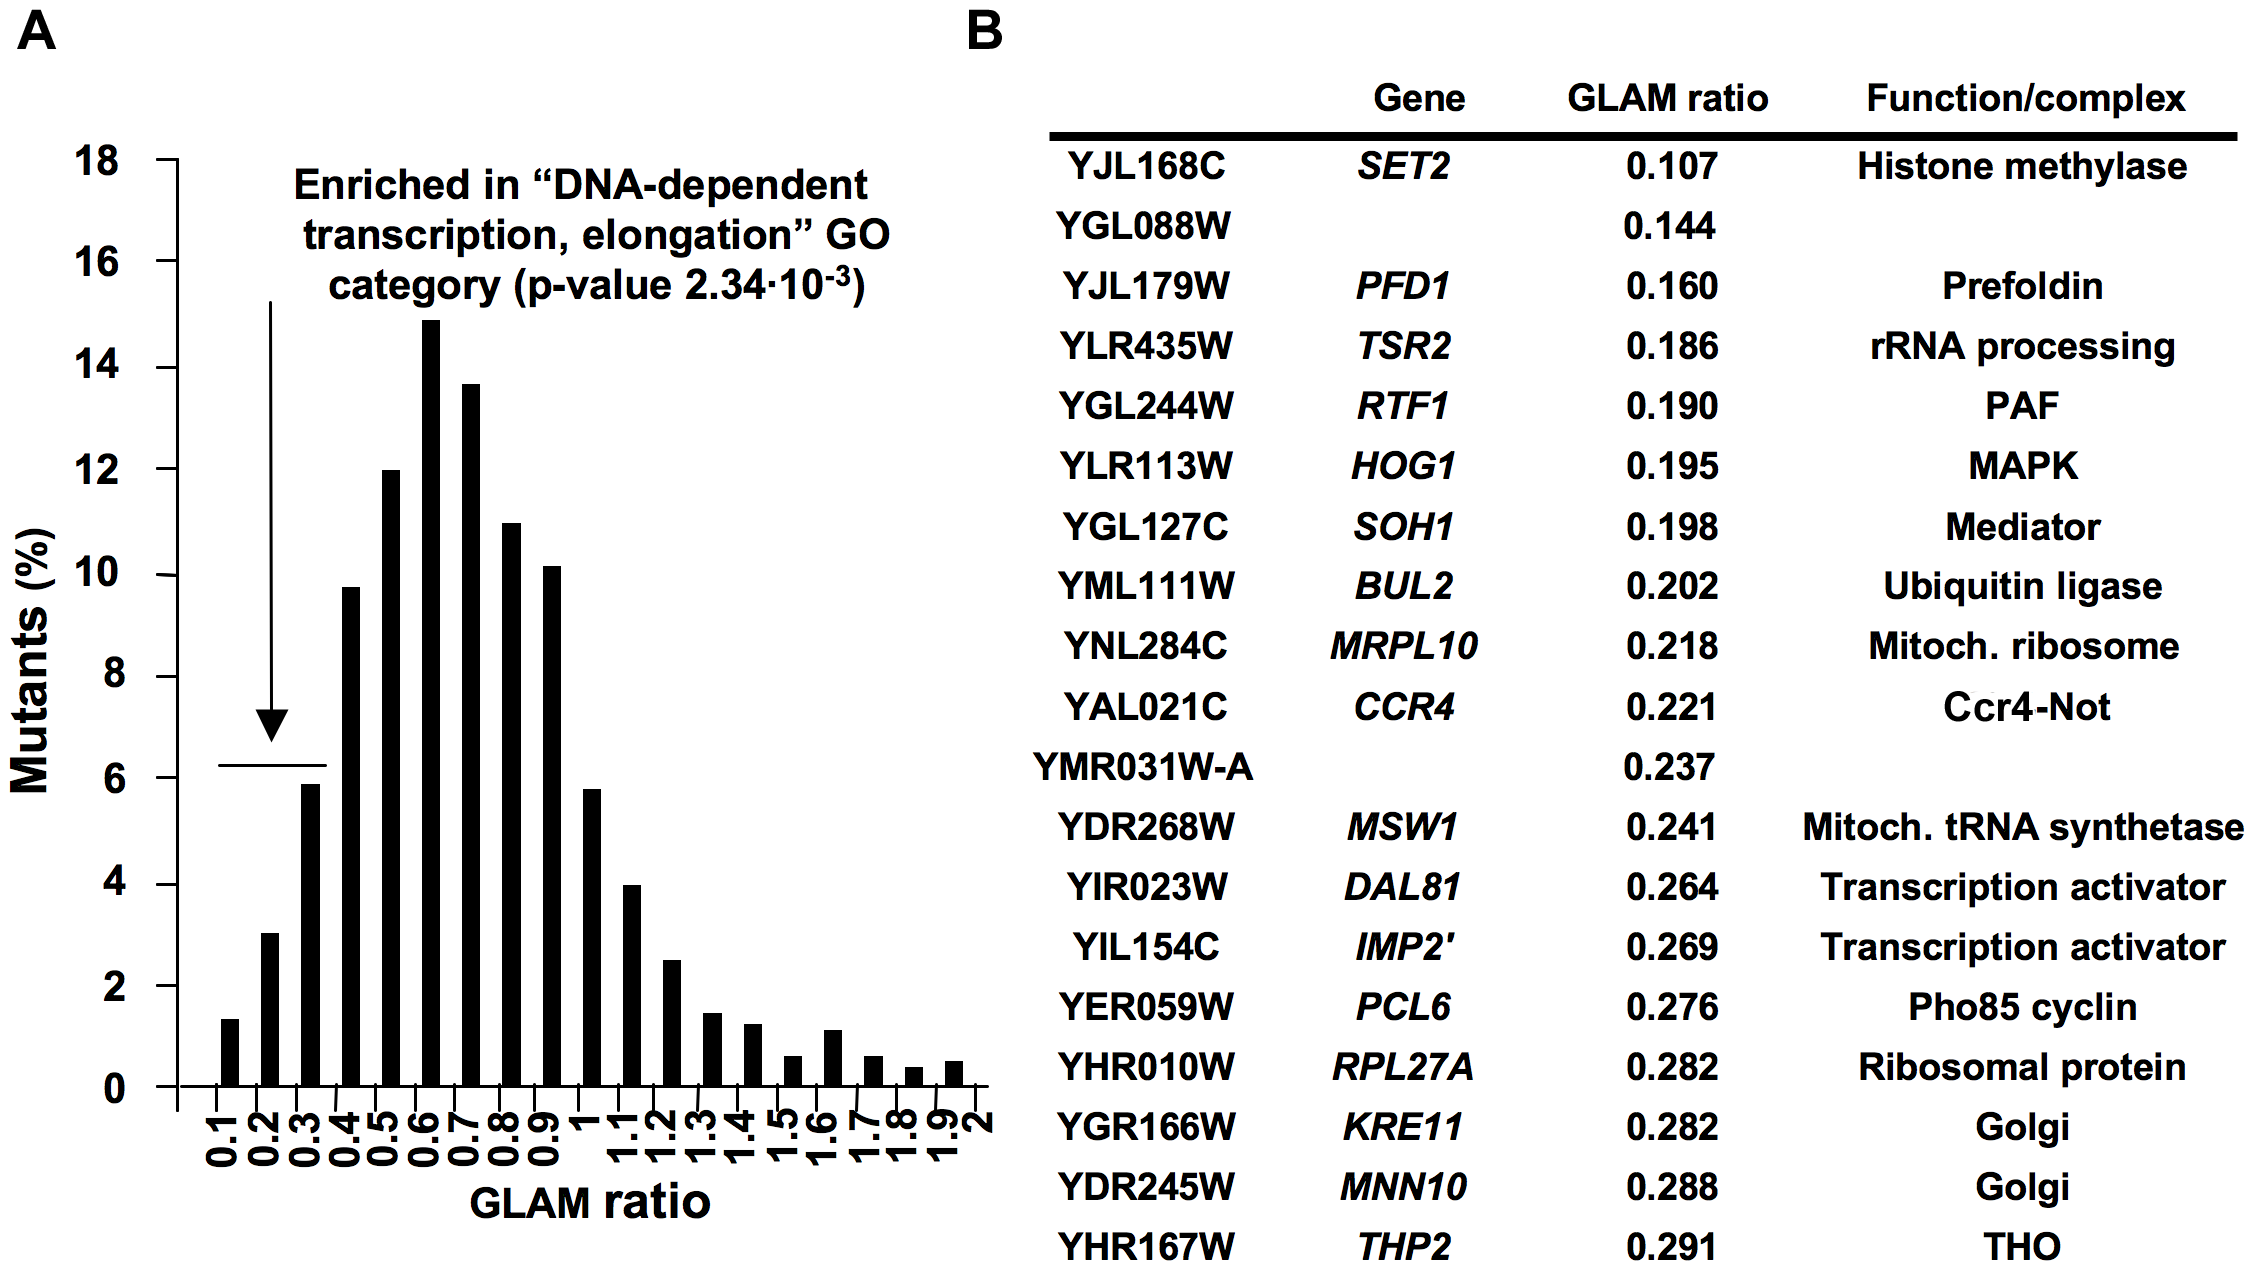 Systematic genetic analysis of budding yeast <i>Saccharomyces cerevisiae</i> based on the GLAM assay.